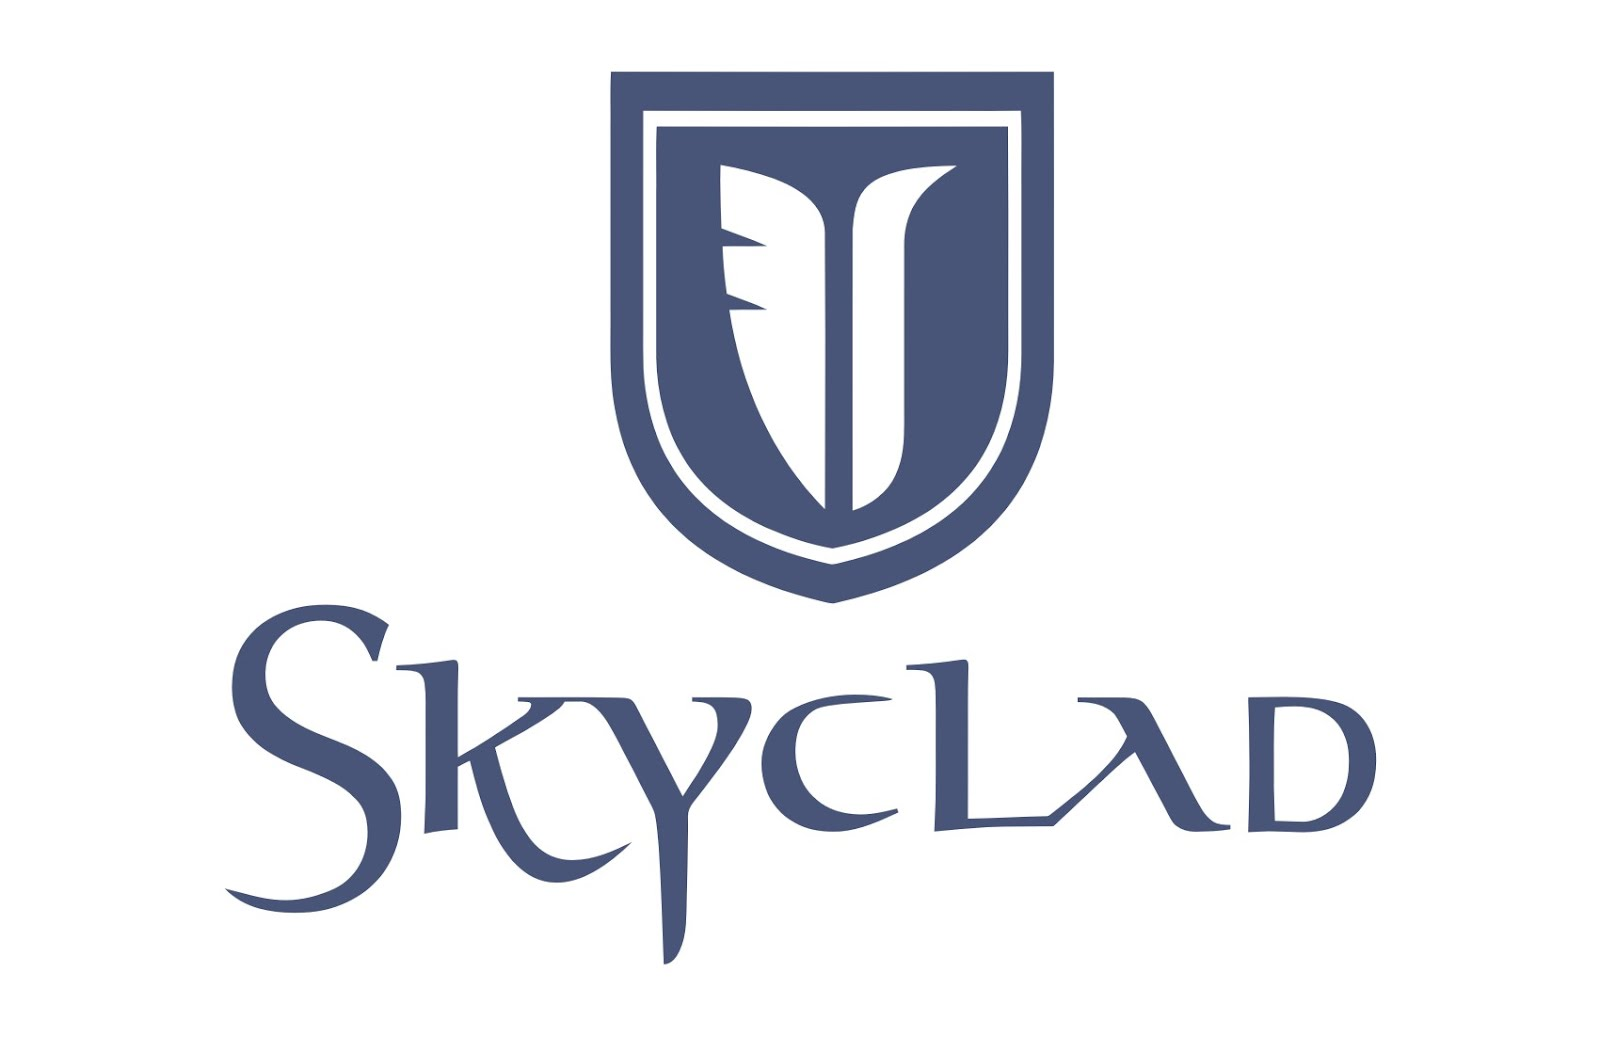 skyclad-symbol_pictures